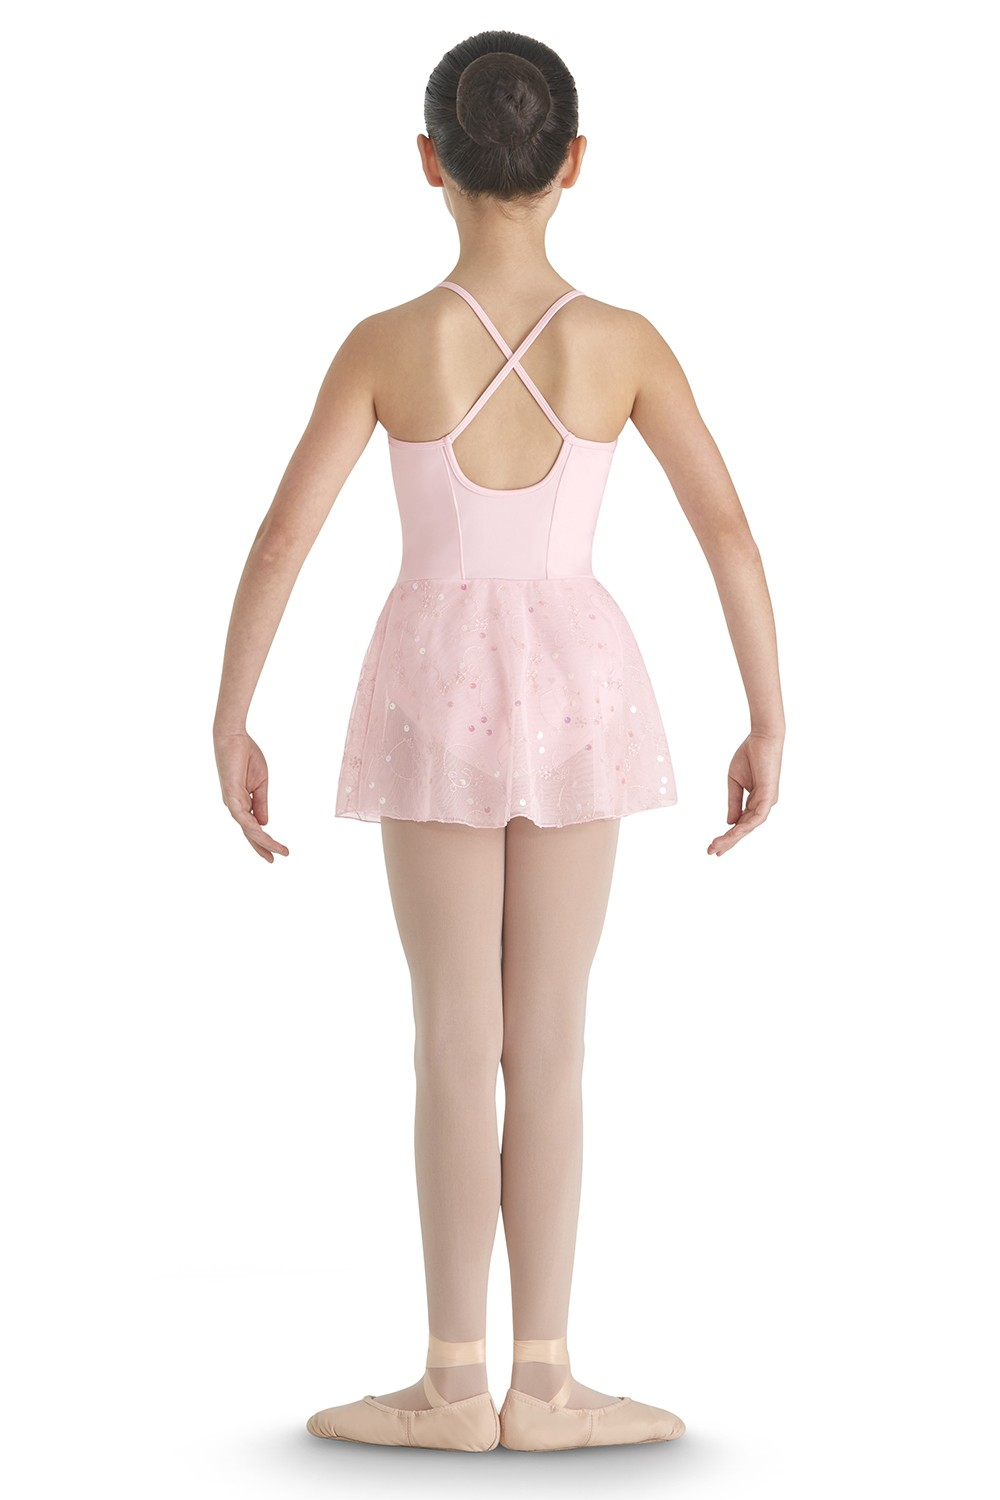 Ailsa Children's Dance Leotards